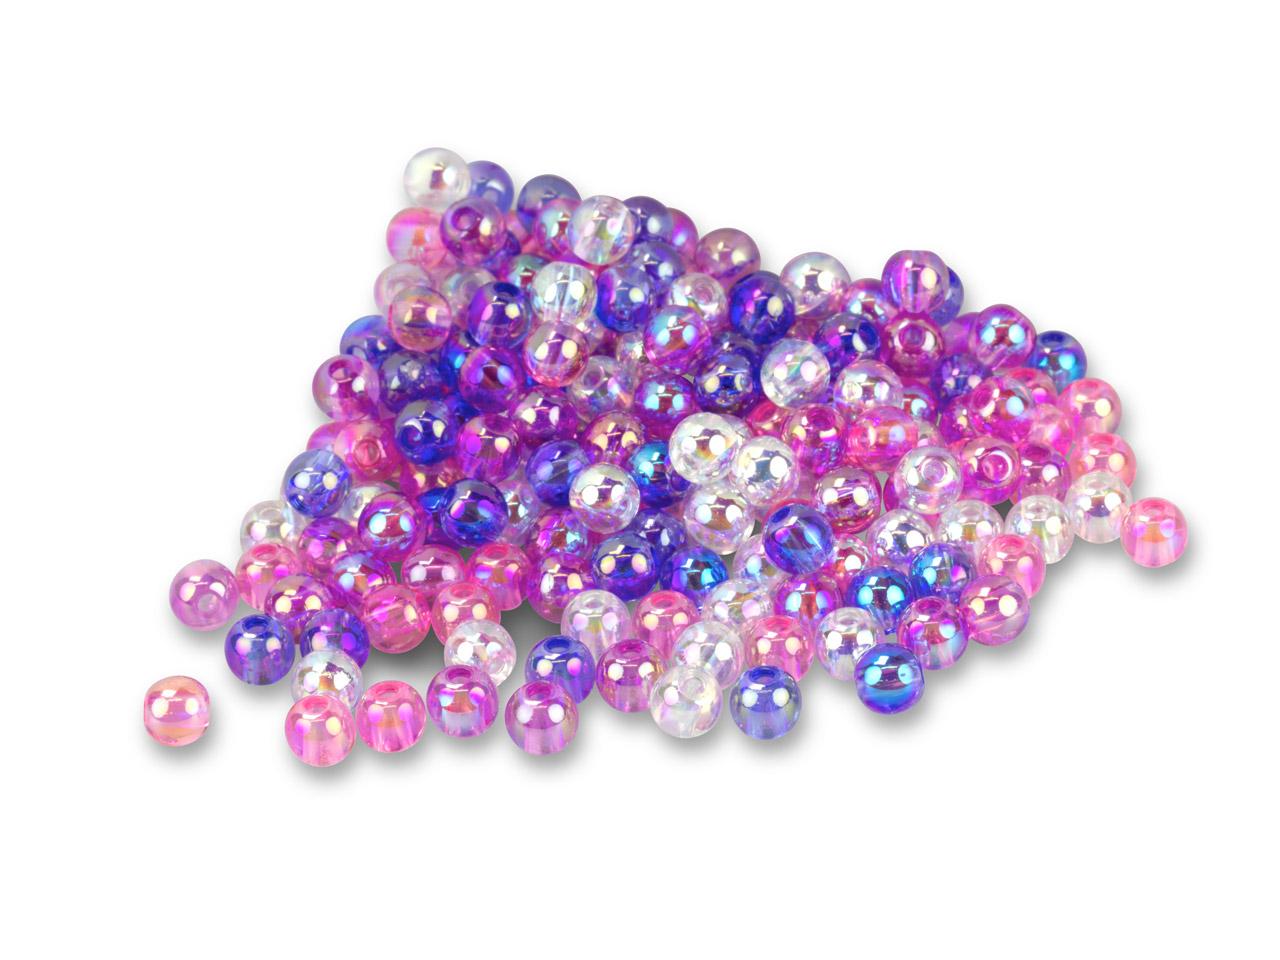 Iridescent Plastic 'bubble' Beads, 6mm, Mixed Colours, Pack of 200